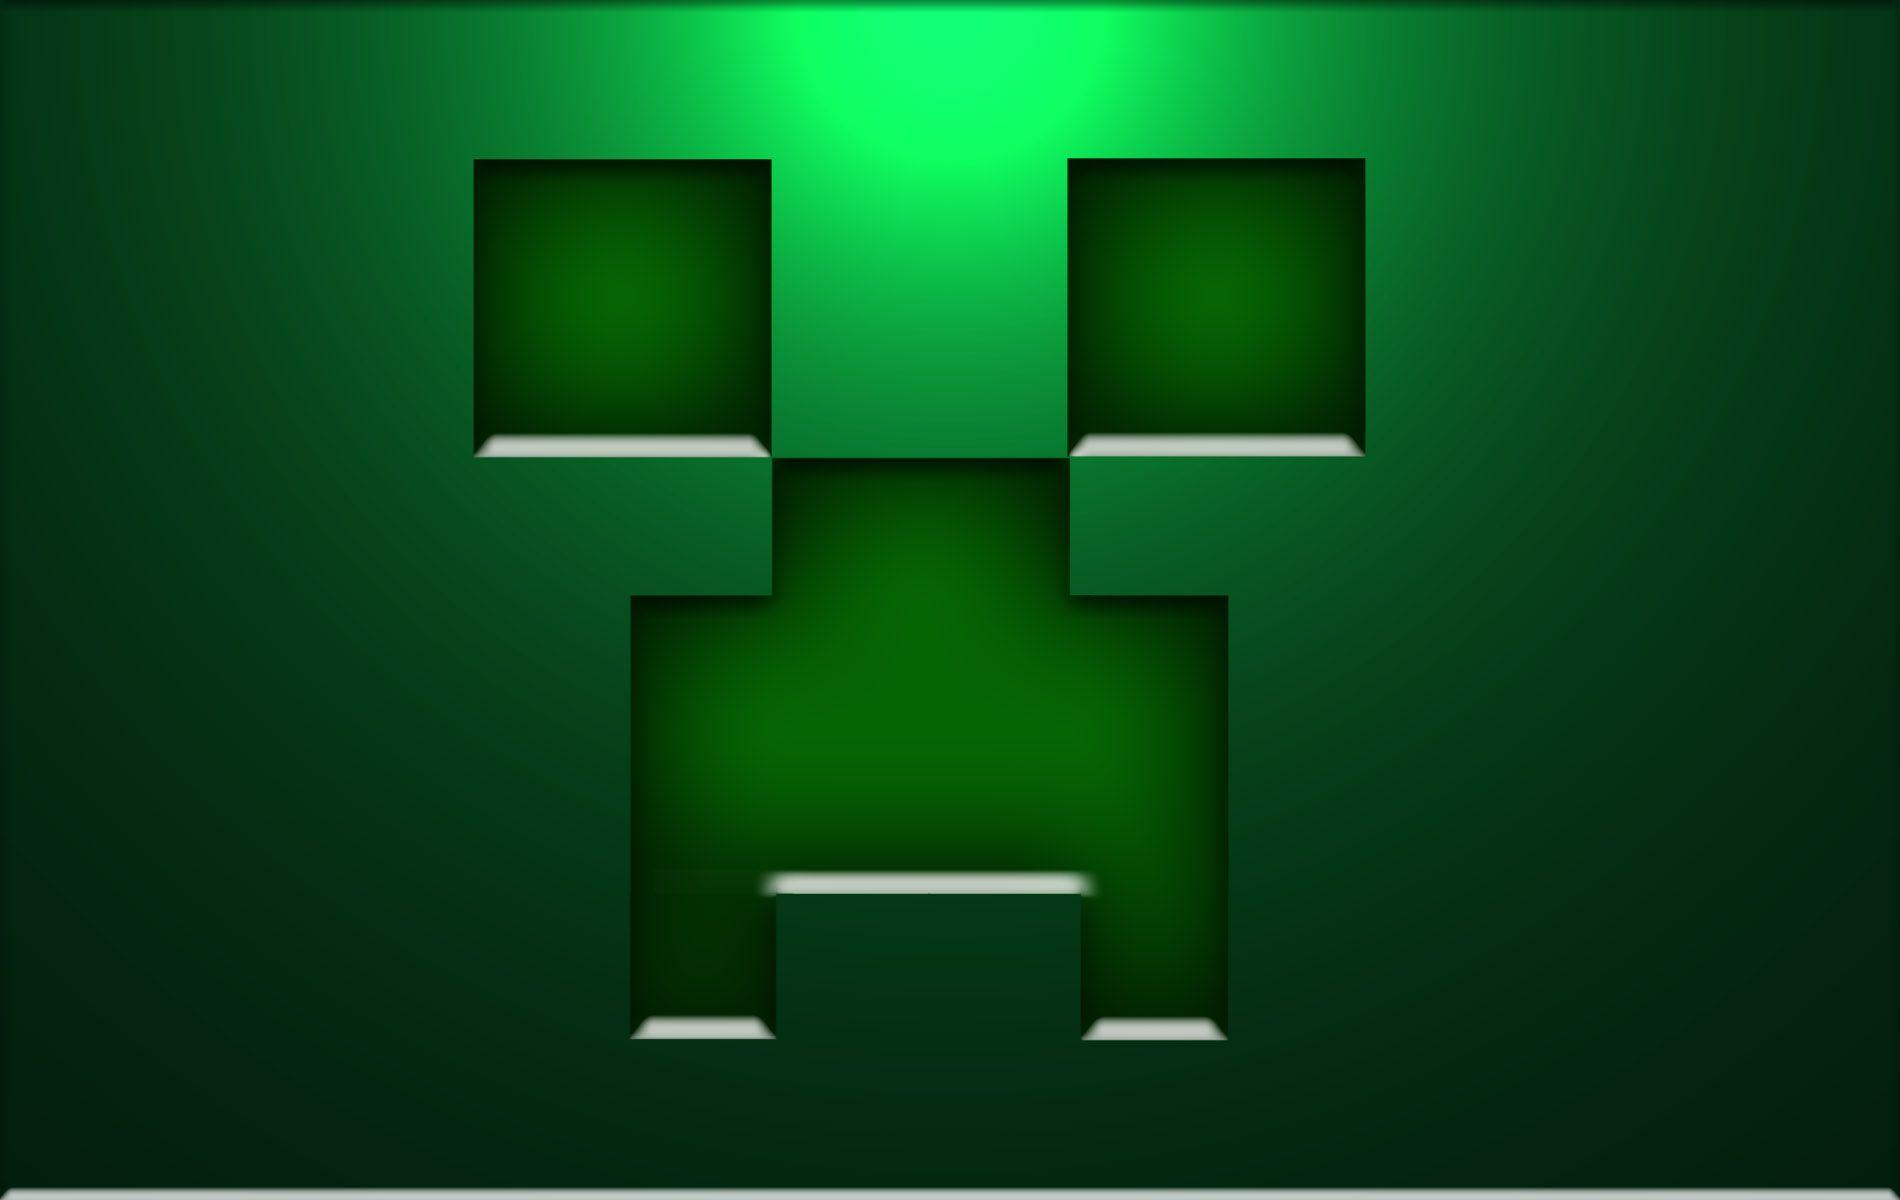 Minecraft Creeper Wallpaper HD #722 | Hdwidescreens.com